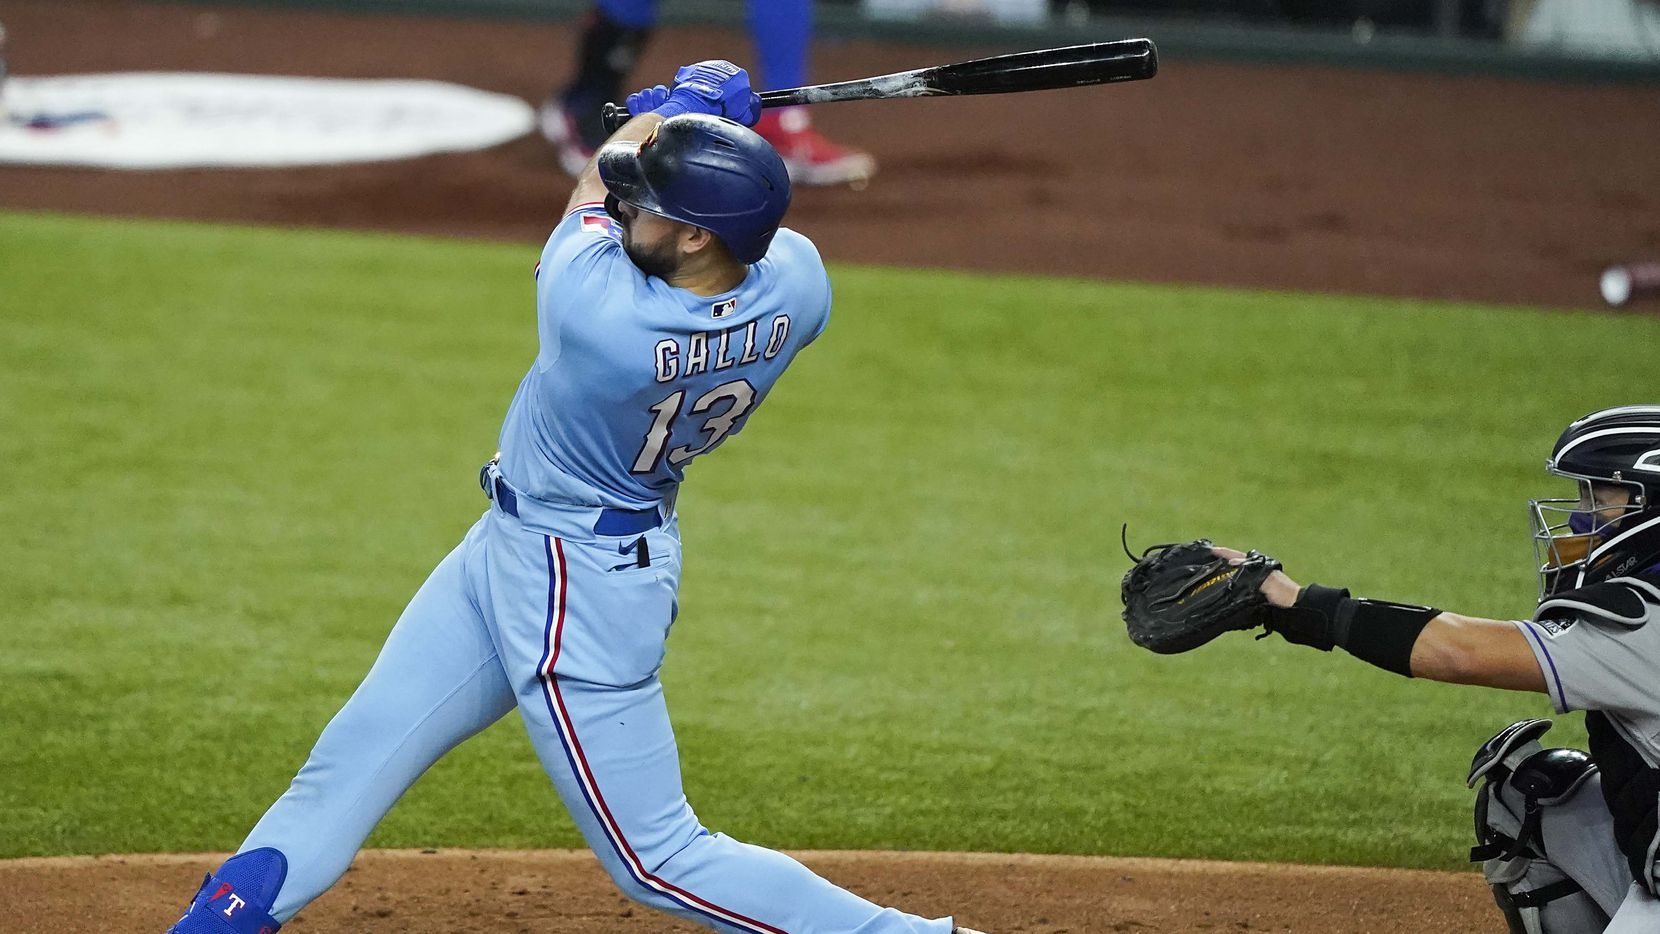 Texas Rangers outfielder Joey Gallo hits the first official home run in the history of the new ballpark during the second inning against the Colorado Rockies at Globe Life Field on Sunday, July 26, 2020.